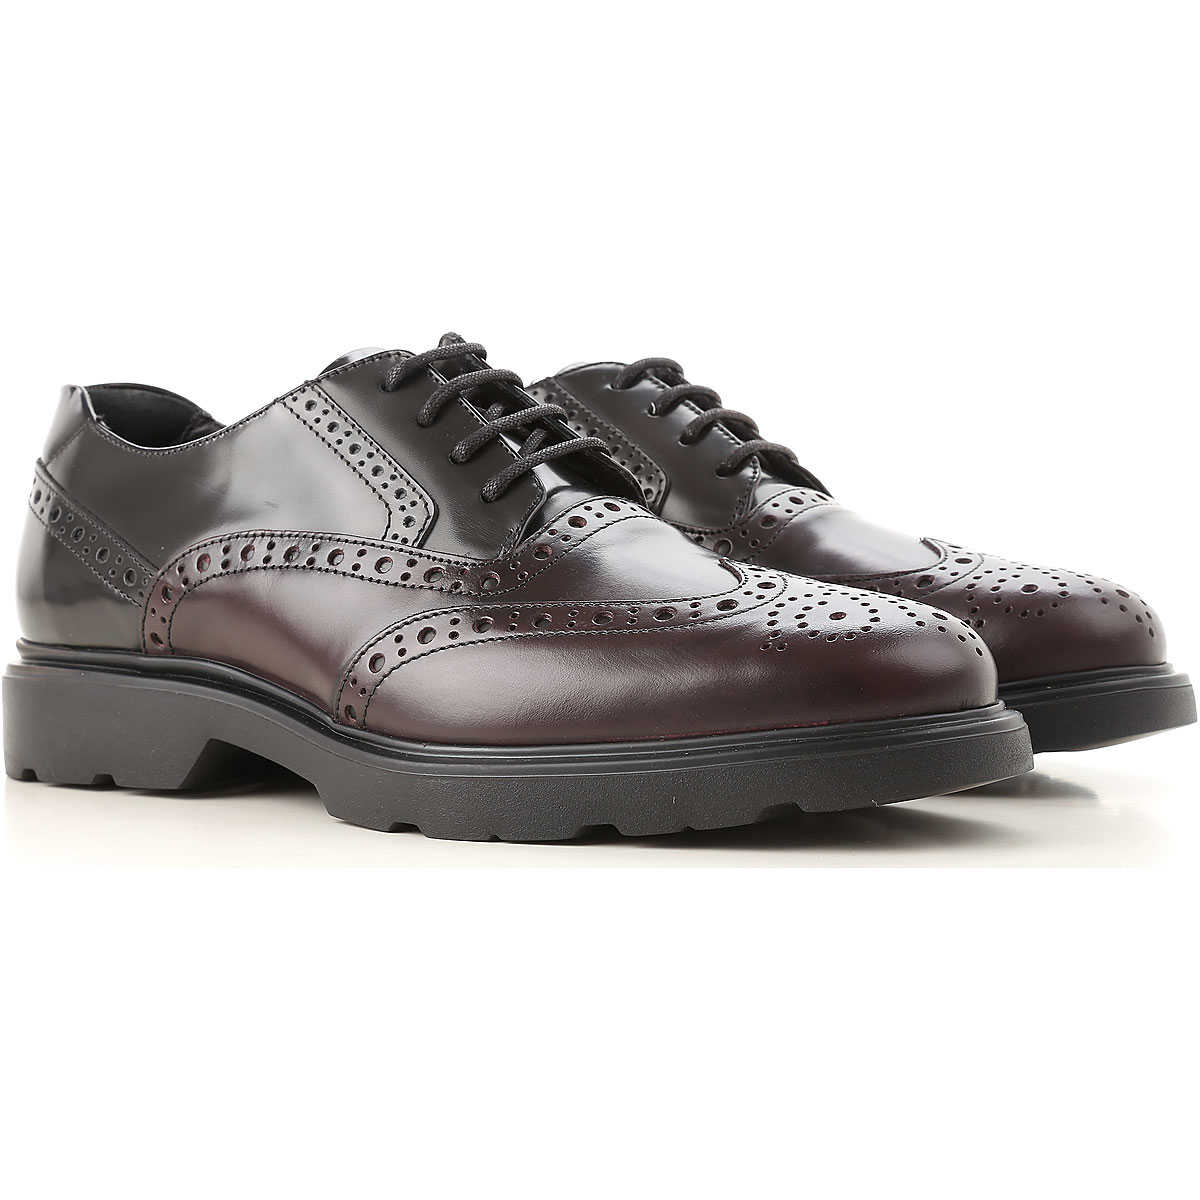 Hogan Lace Up Shoes for Men Oxfords Derbies and Brogues On Sale USA - GOOFASH